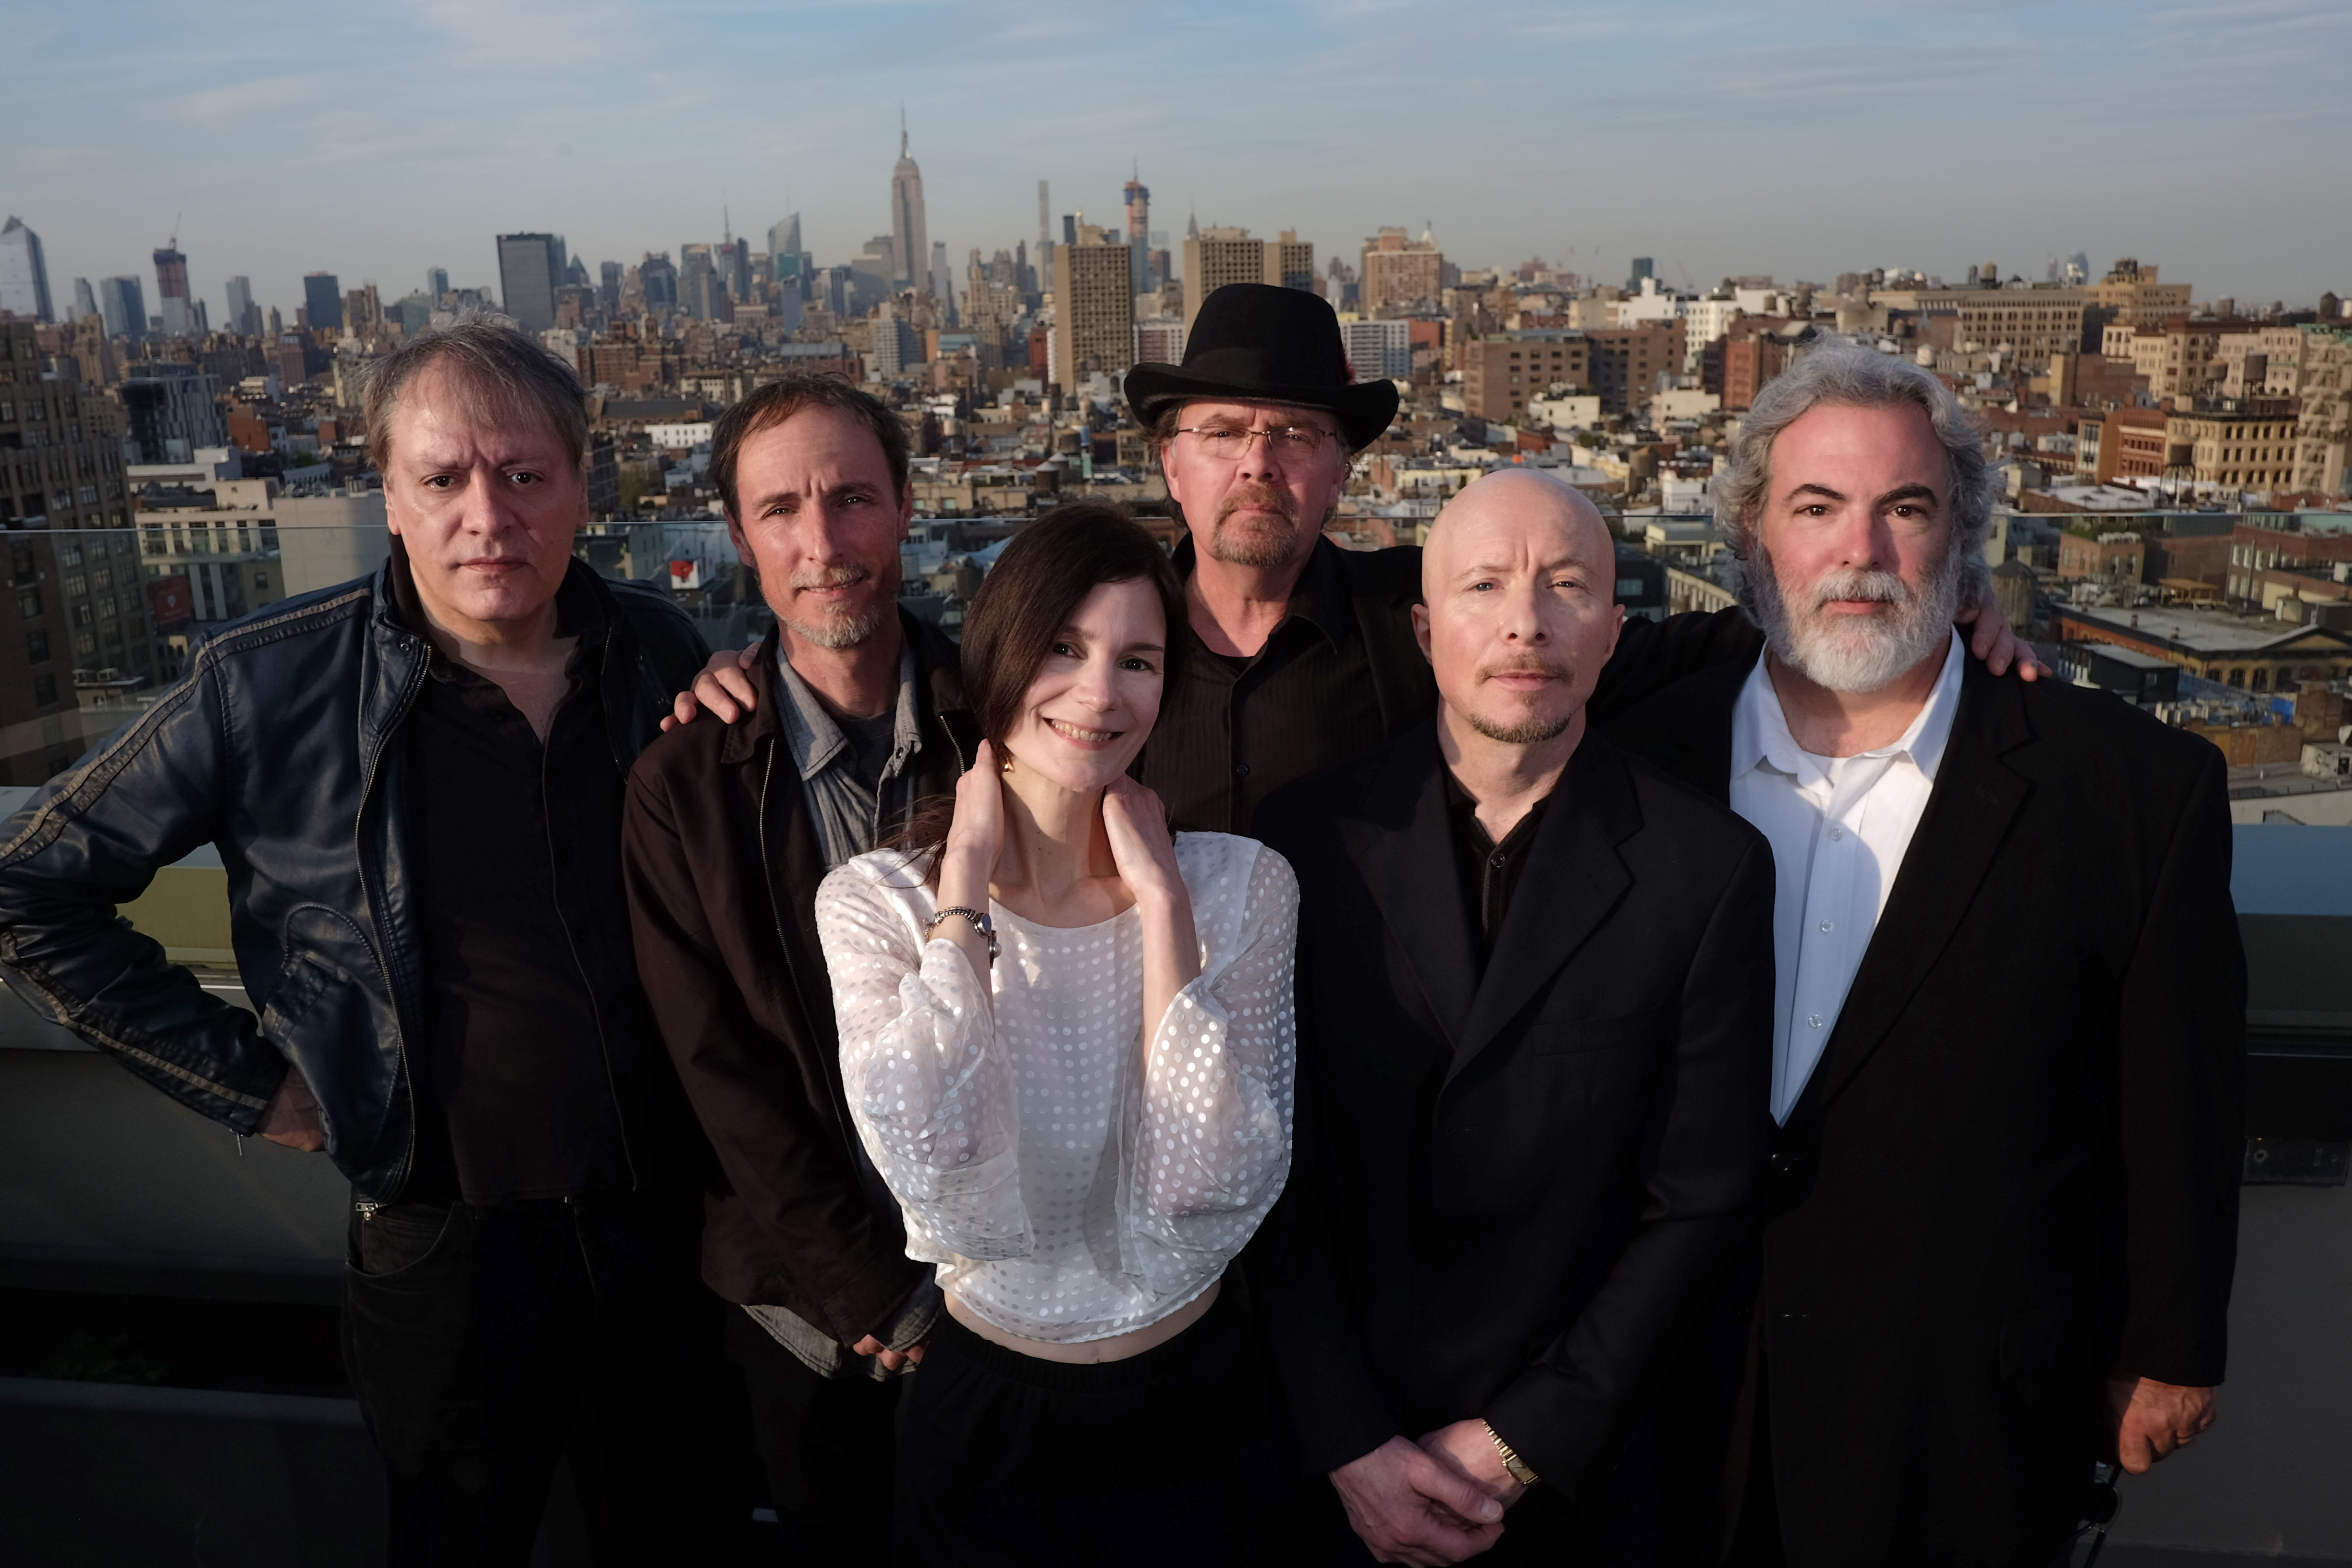 (L-R) John Lombardo, Jeff Erickson, Mary Ramsey, Steve Gustafson, Jerry Augustyniak, and Dennis Drew, of the 10,000 Maniacs pose for a portrait at the Sheraton Tribeca Hotel in Manhattan, New York on Thursday, April 21, 2016. (Thomas Levinson/New York Daily News)